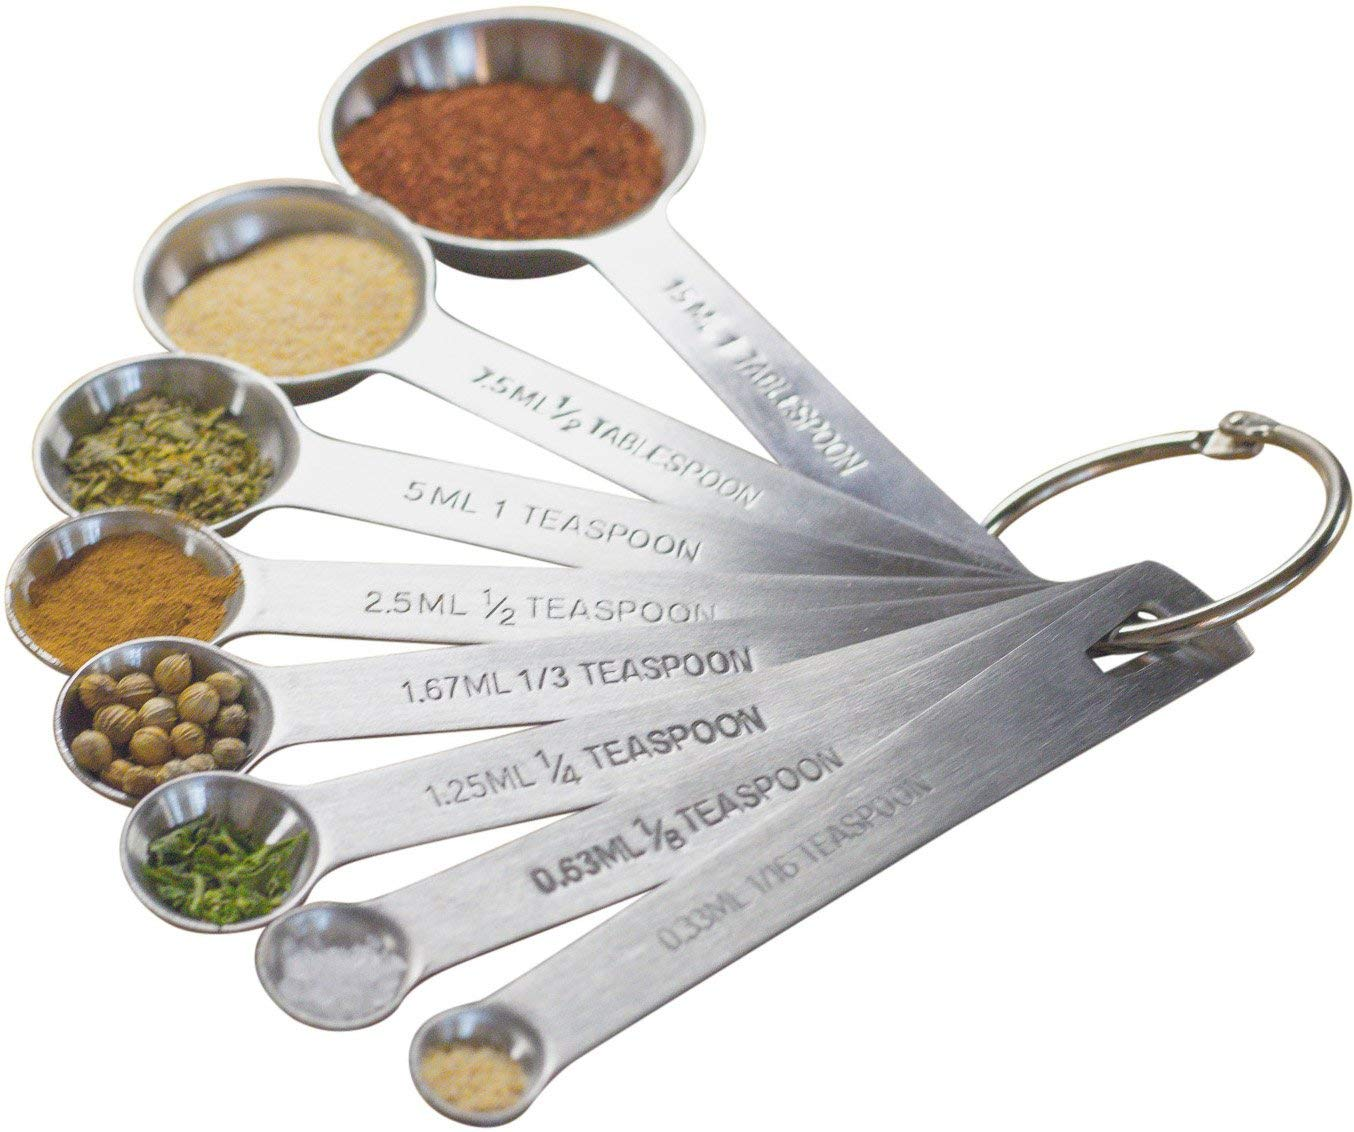 Natizo stainless steel measuring spoons